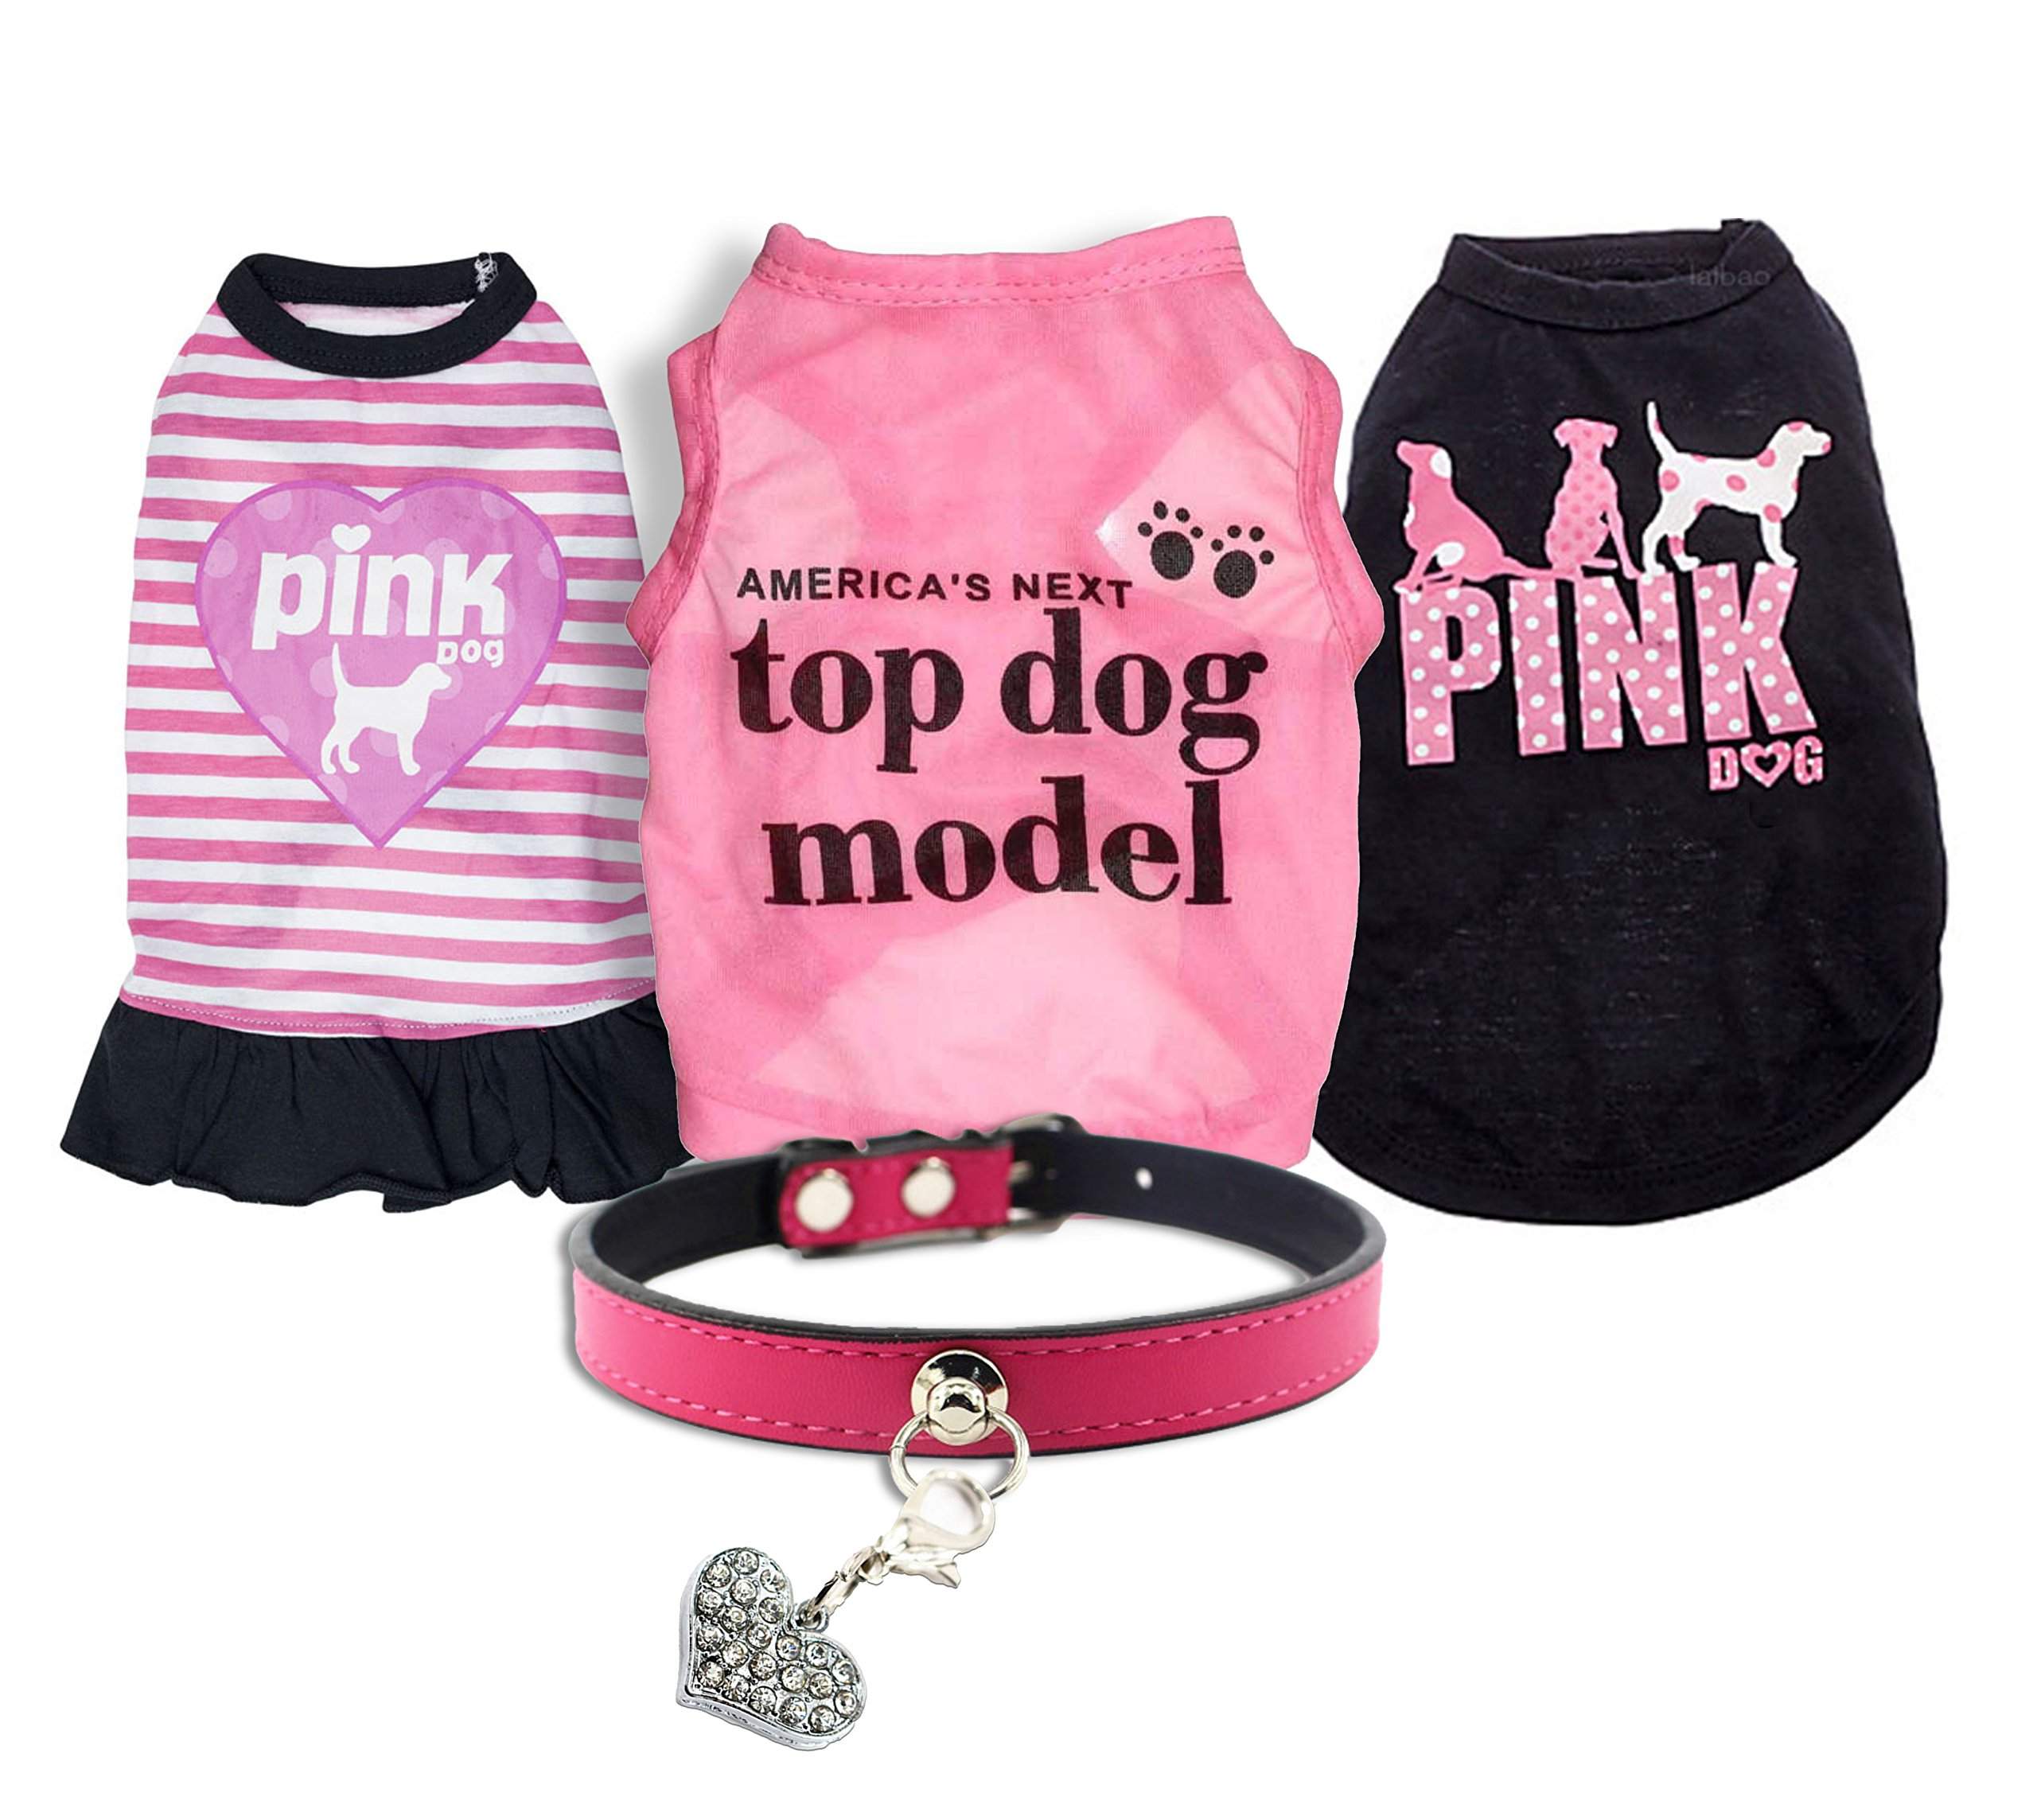 Ollypet Set of 5 Bulk Dog Clothes Dress Shirt Collar For Small Dogs Girl Accessories Puppy Cat Pink Pet Cute Summer Apparel Chihuahua Yorkie L